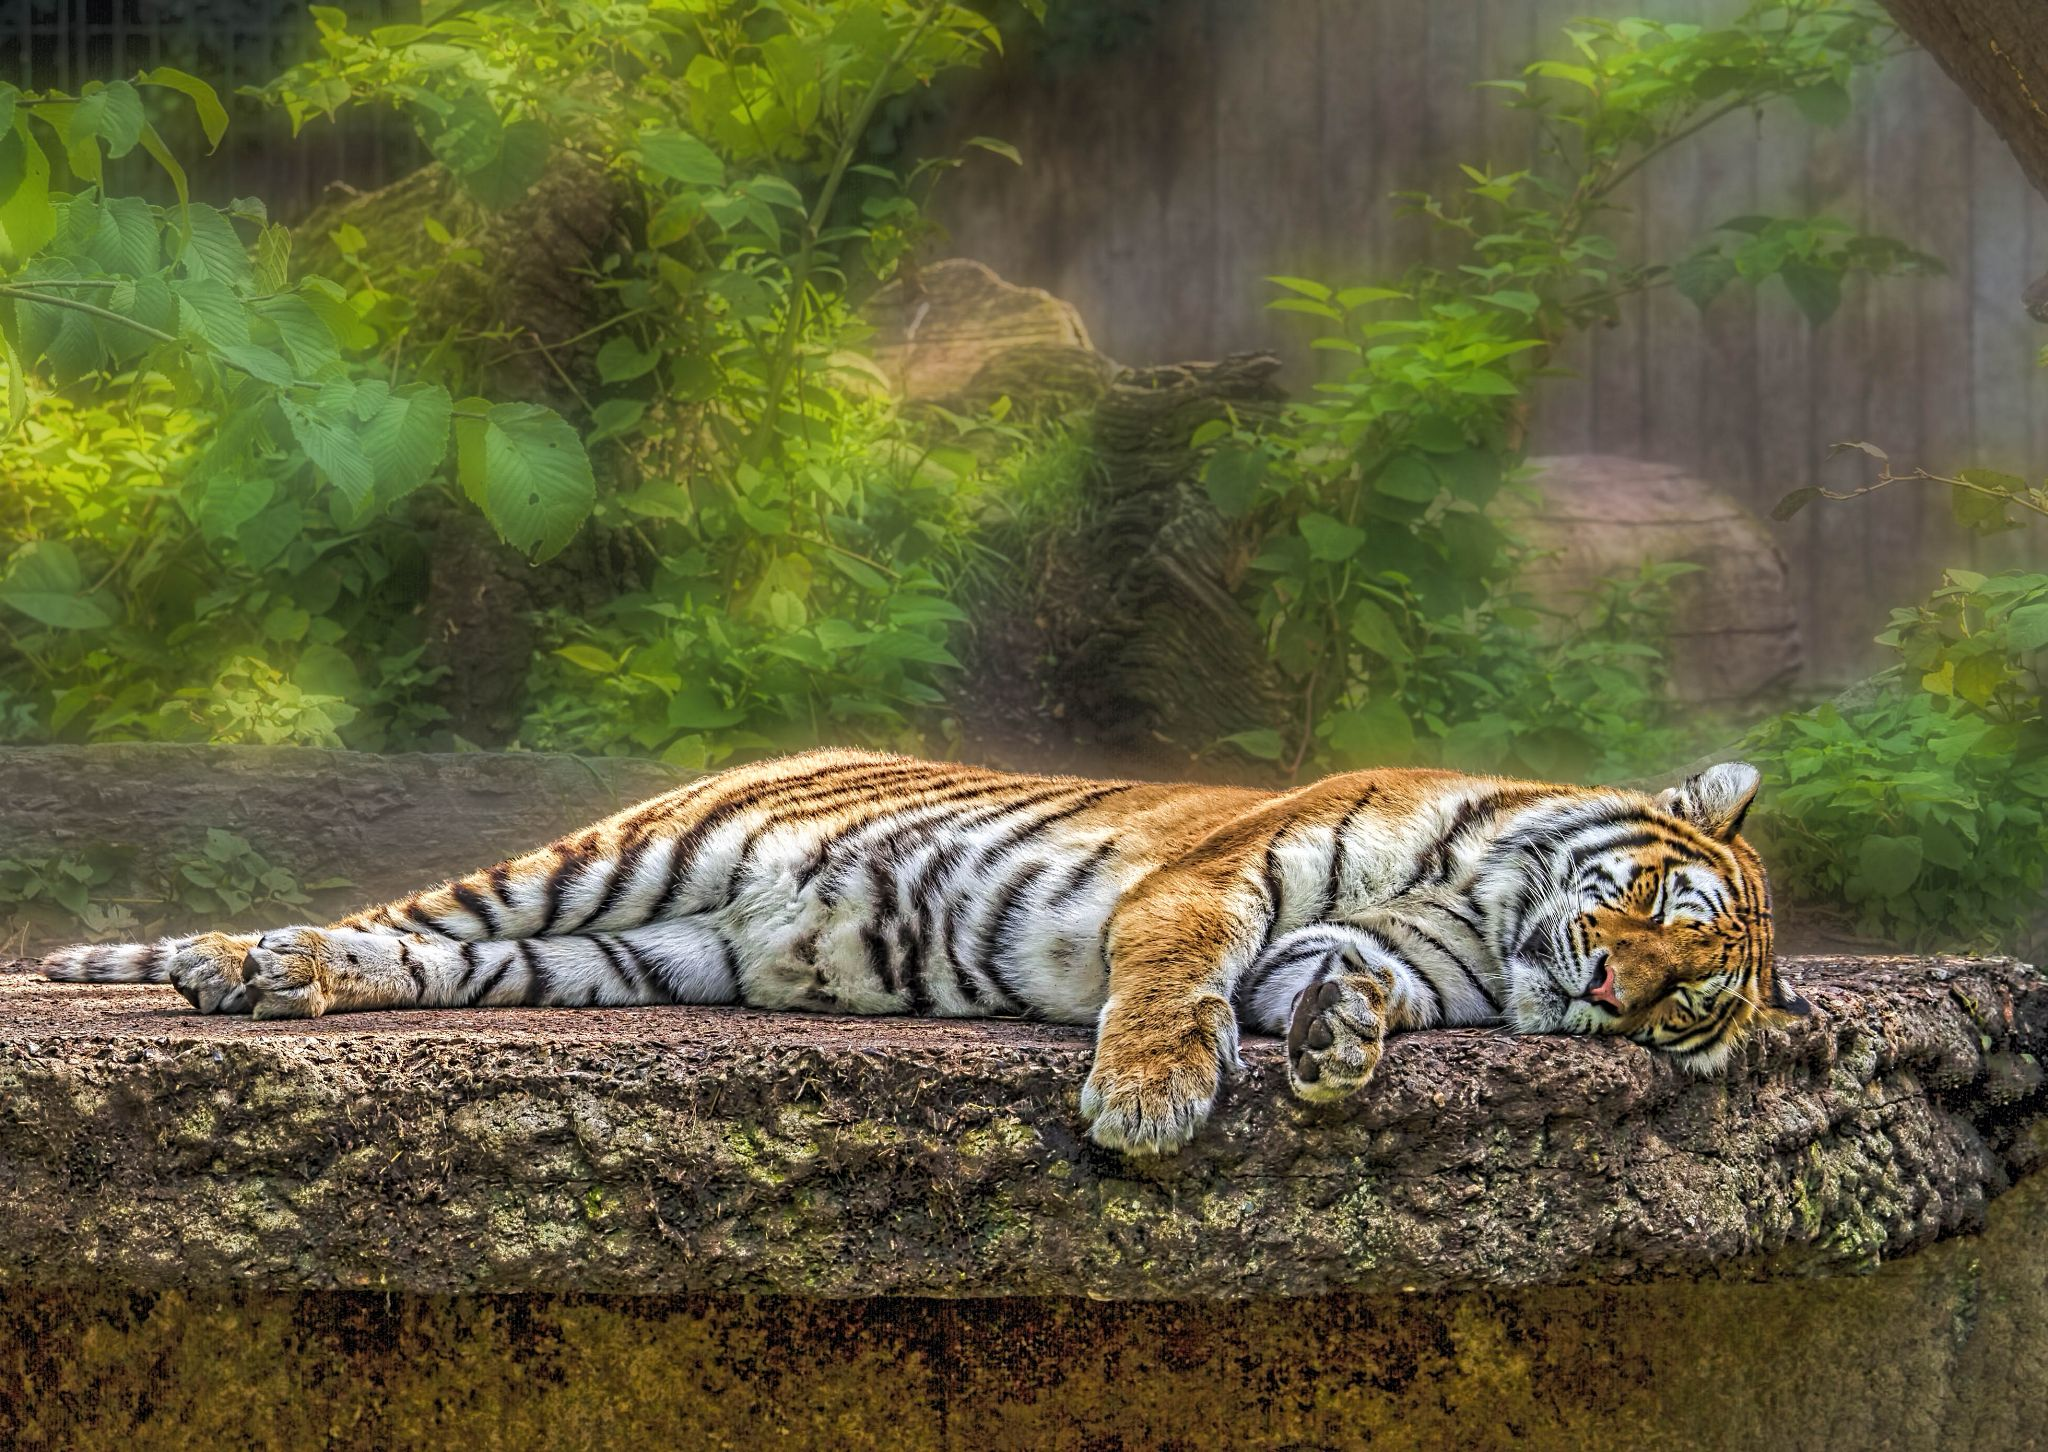 Tiger Nap by mike59